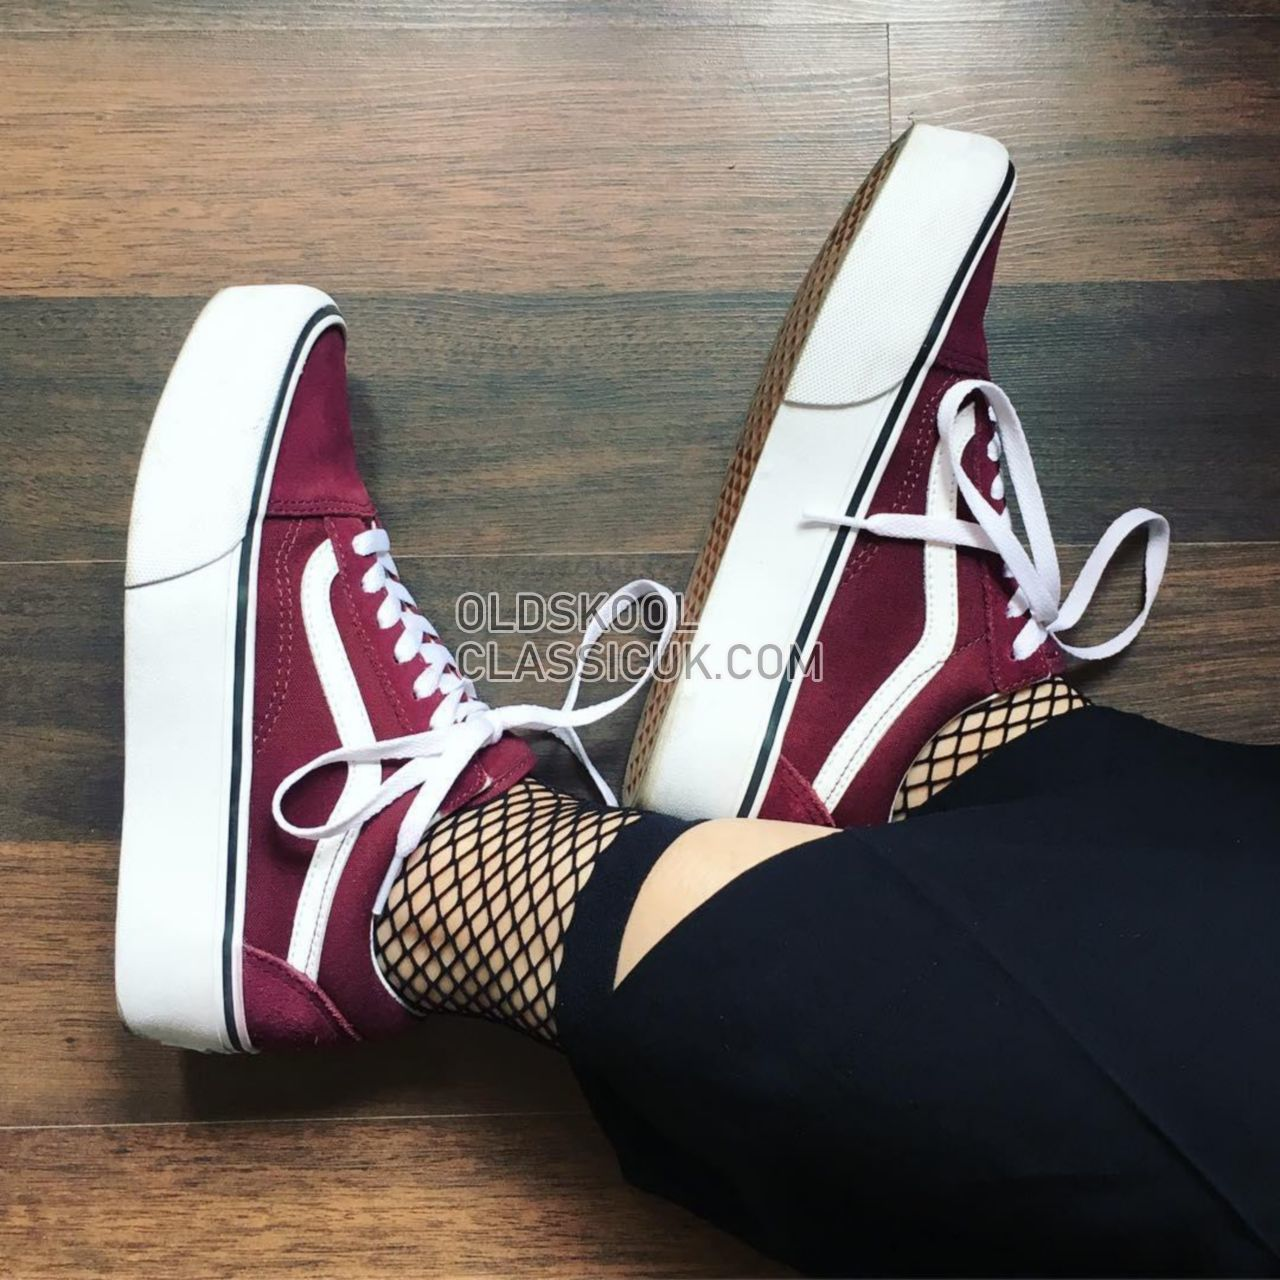 Vans Platform Old Skool Sneakers Womens Port Royale/True White VA3B3U5U7 Shoes